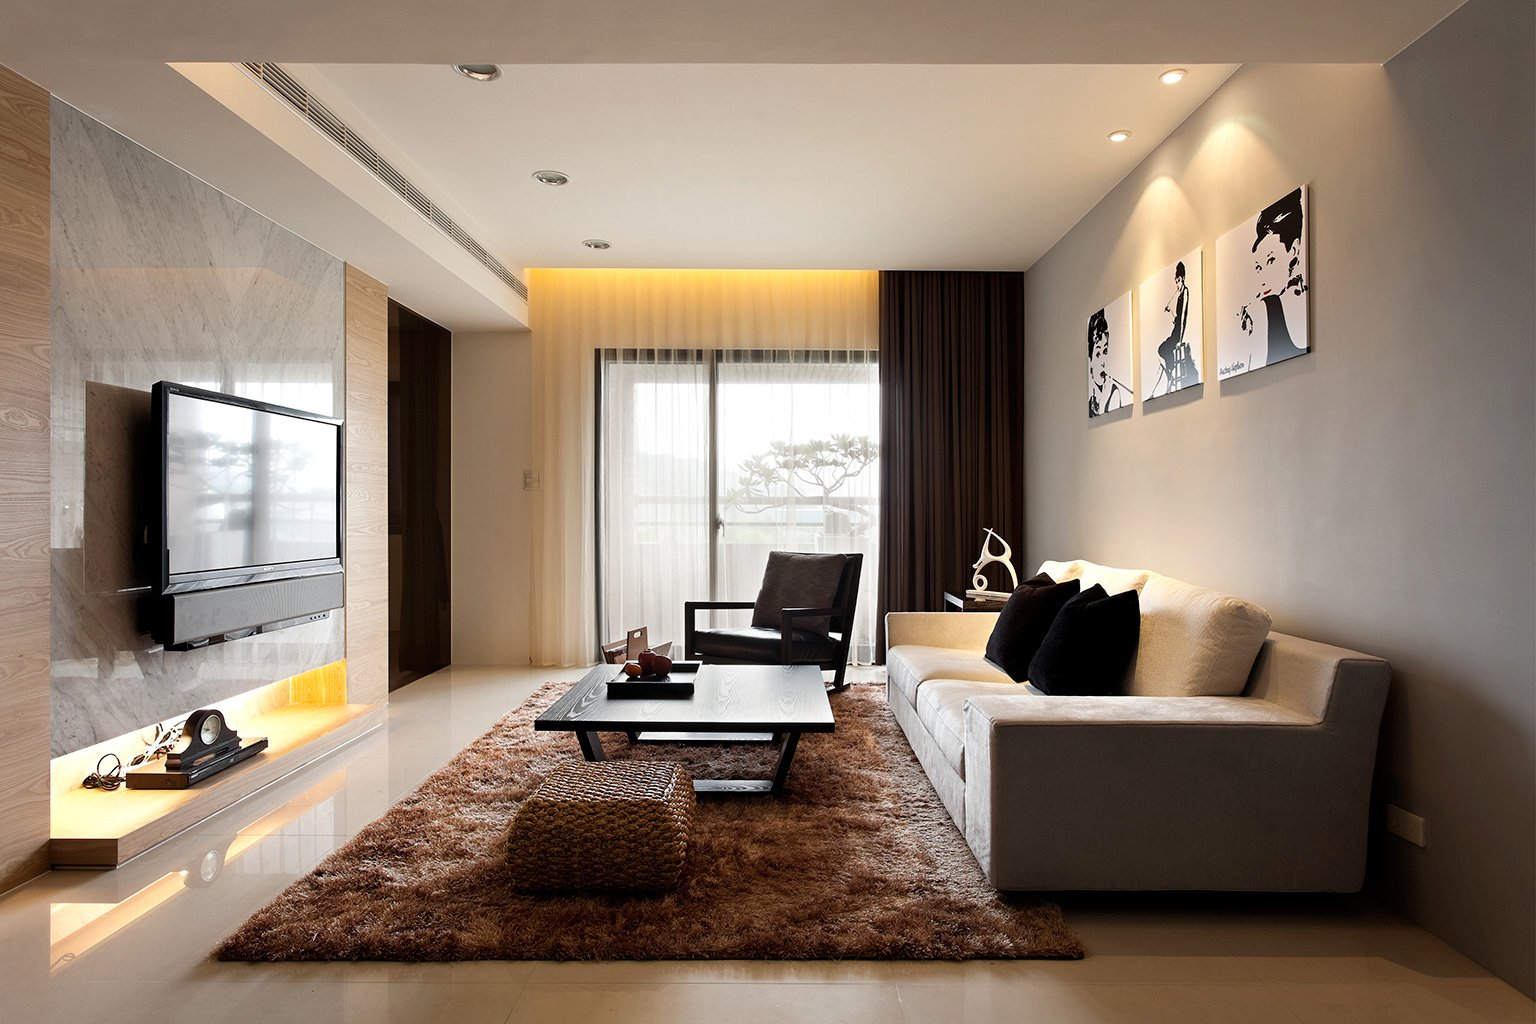 Complete Minimalist Living Room Decor with Dark Coffee Table and Fluffy  Sofa on Brown Carpet Rug Decoration Ideas MidCityEast